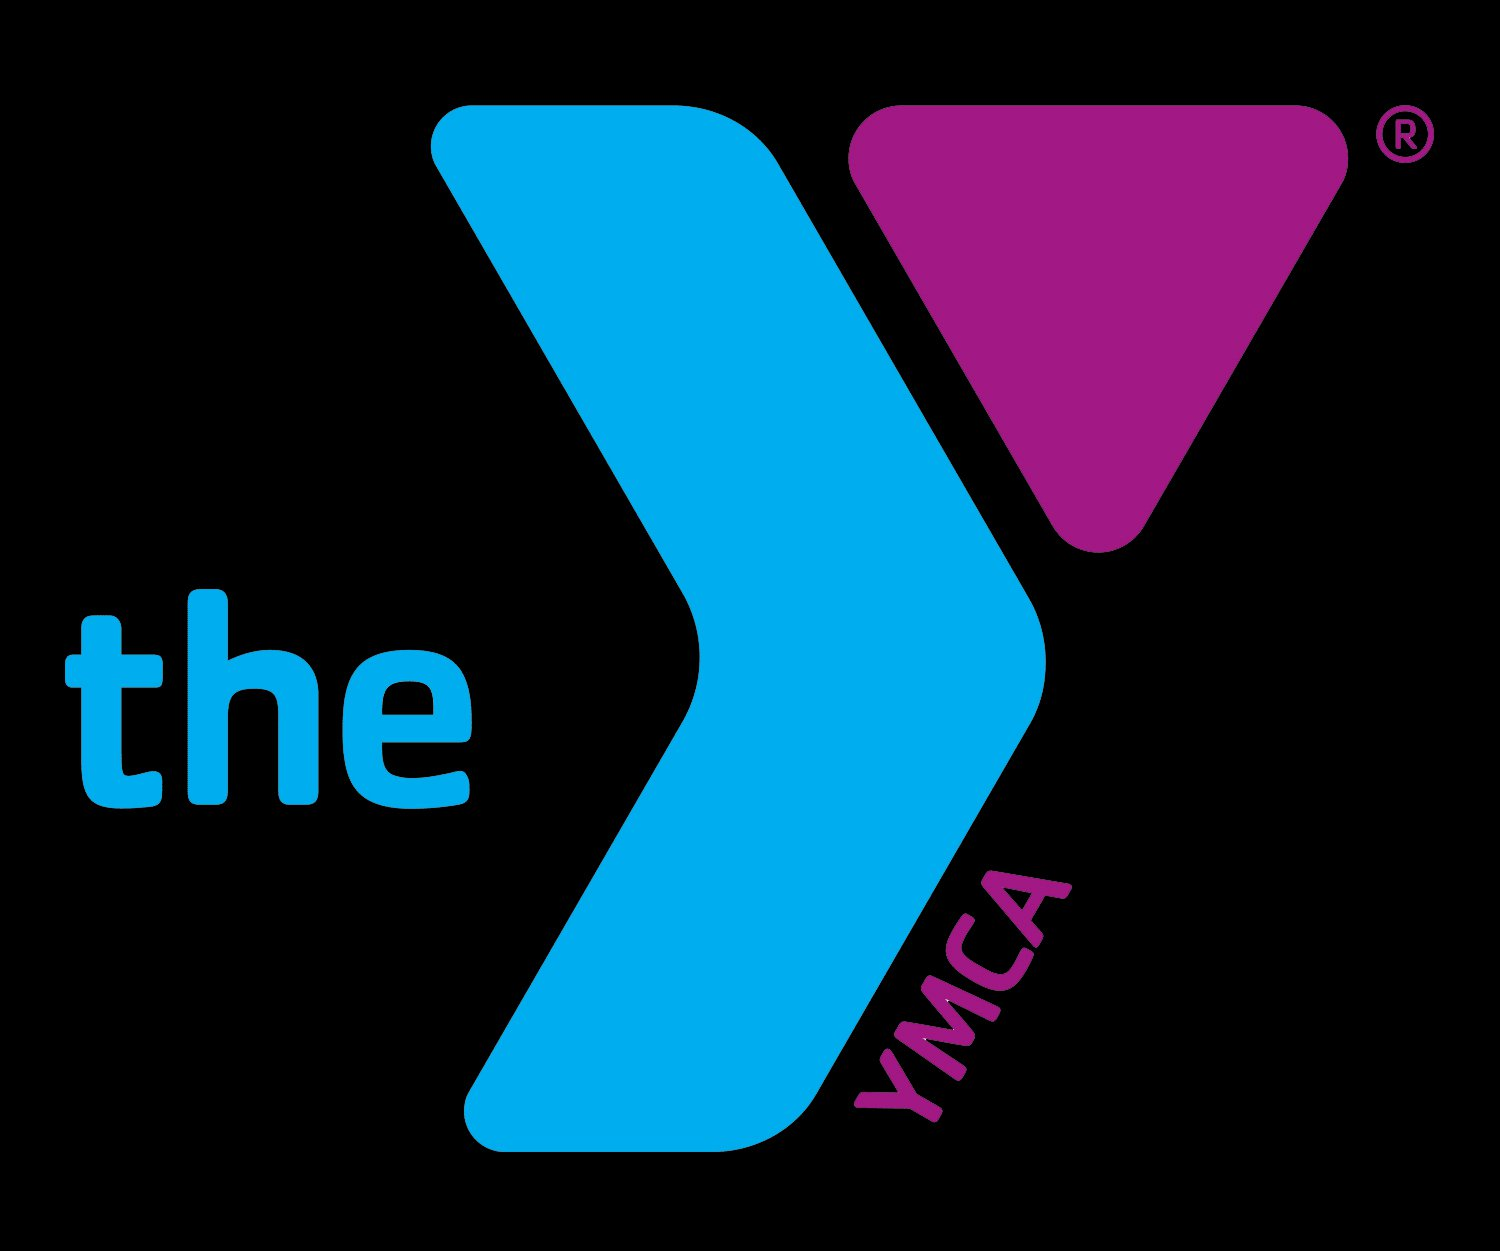 ymca logo  young men u0026 39 s christian association symbol  meaning